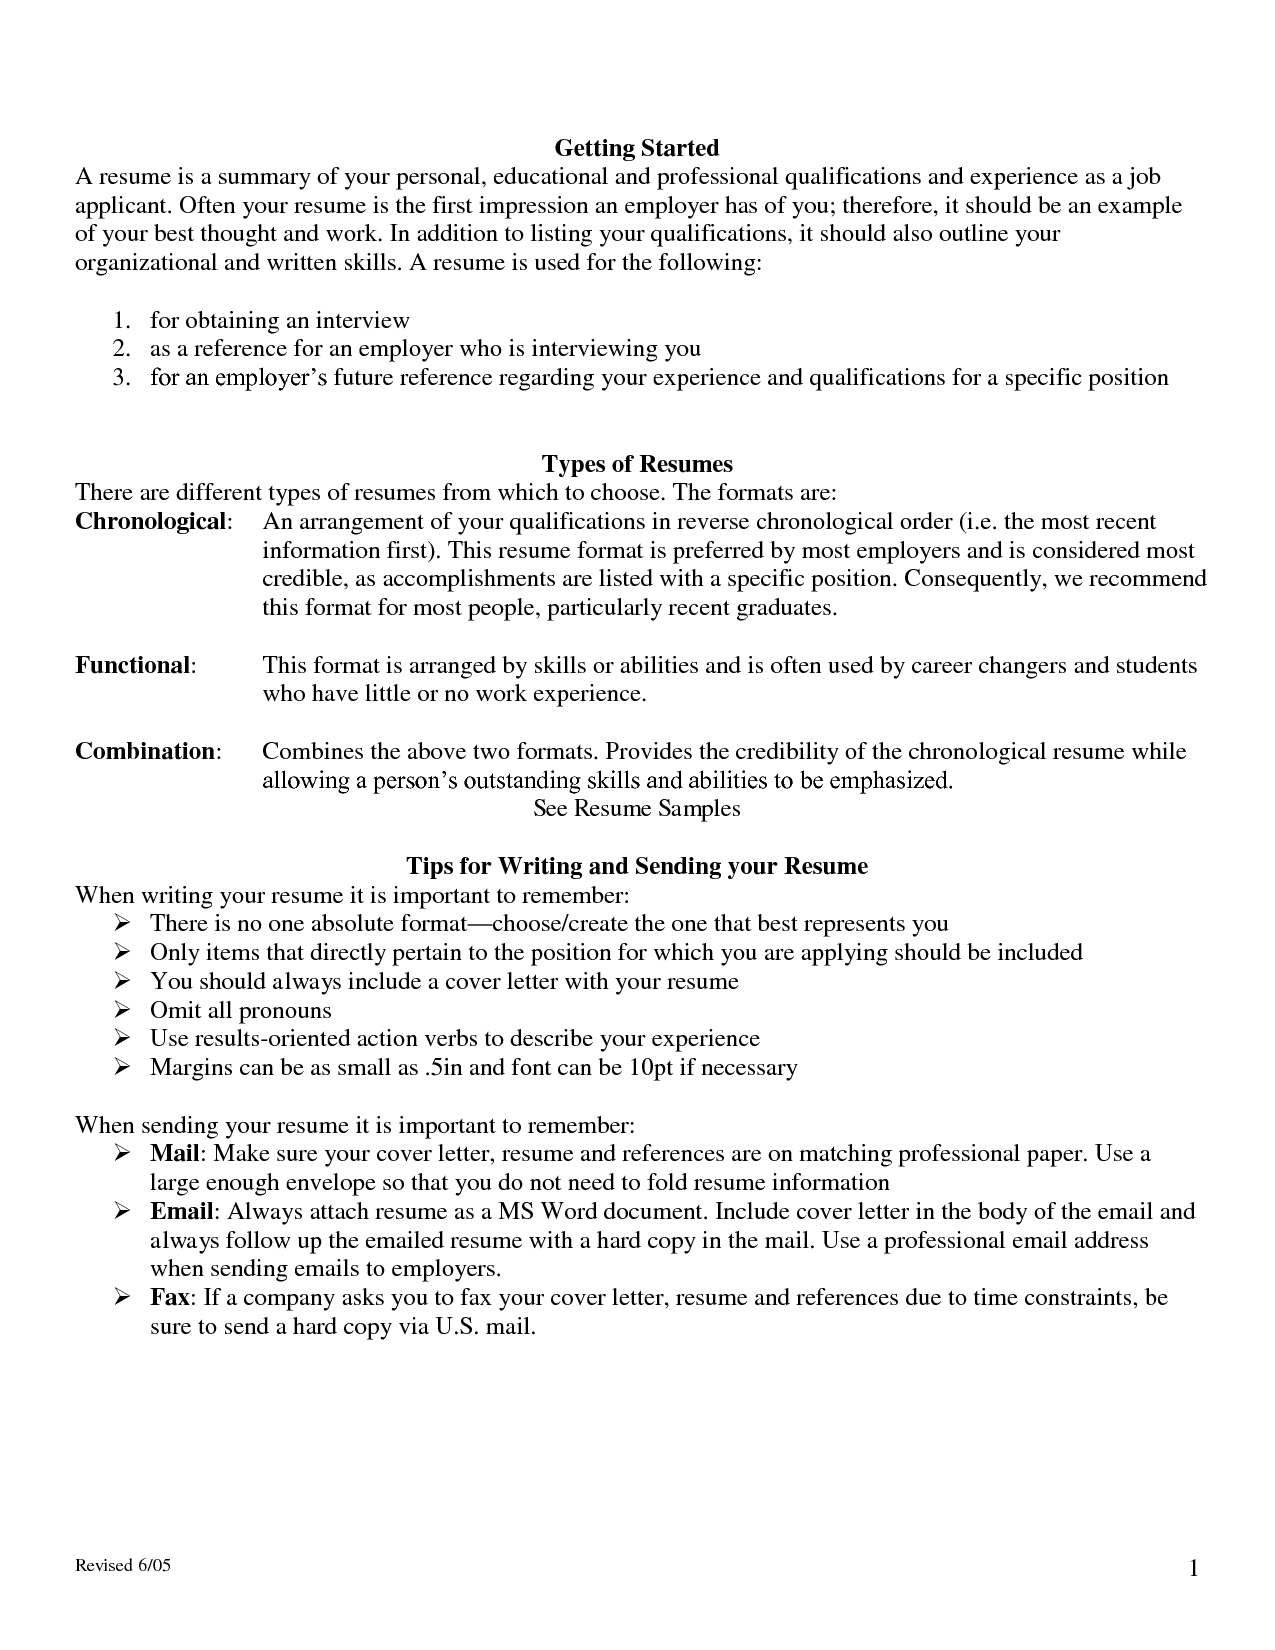 sample resume for entry level bank teller sample resume for entry level bank teller resumecareer